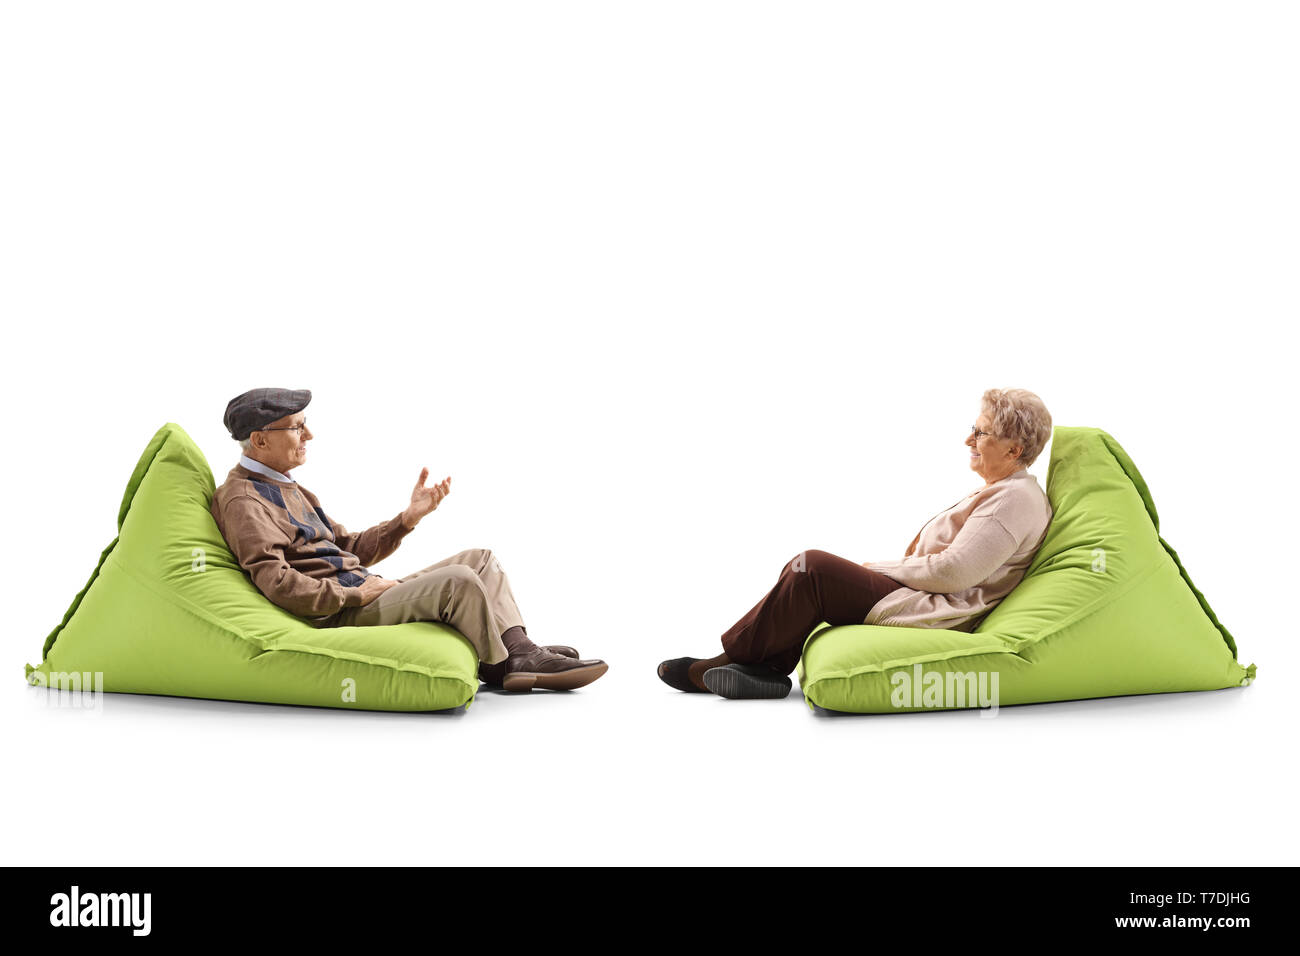 Full length profile shot of an elderly couple sitting on a bean bag armchairs and talking isolated on white background - Stock Image